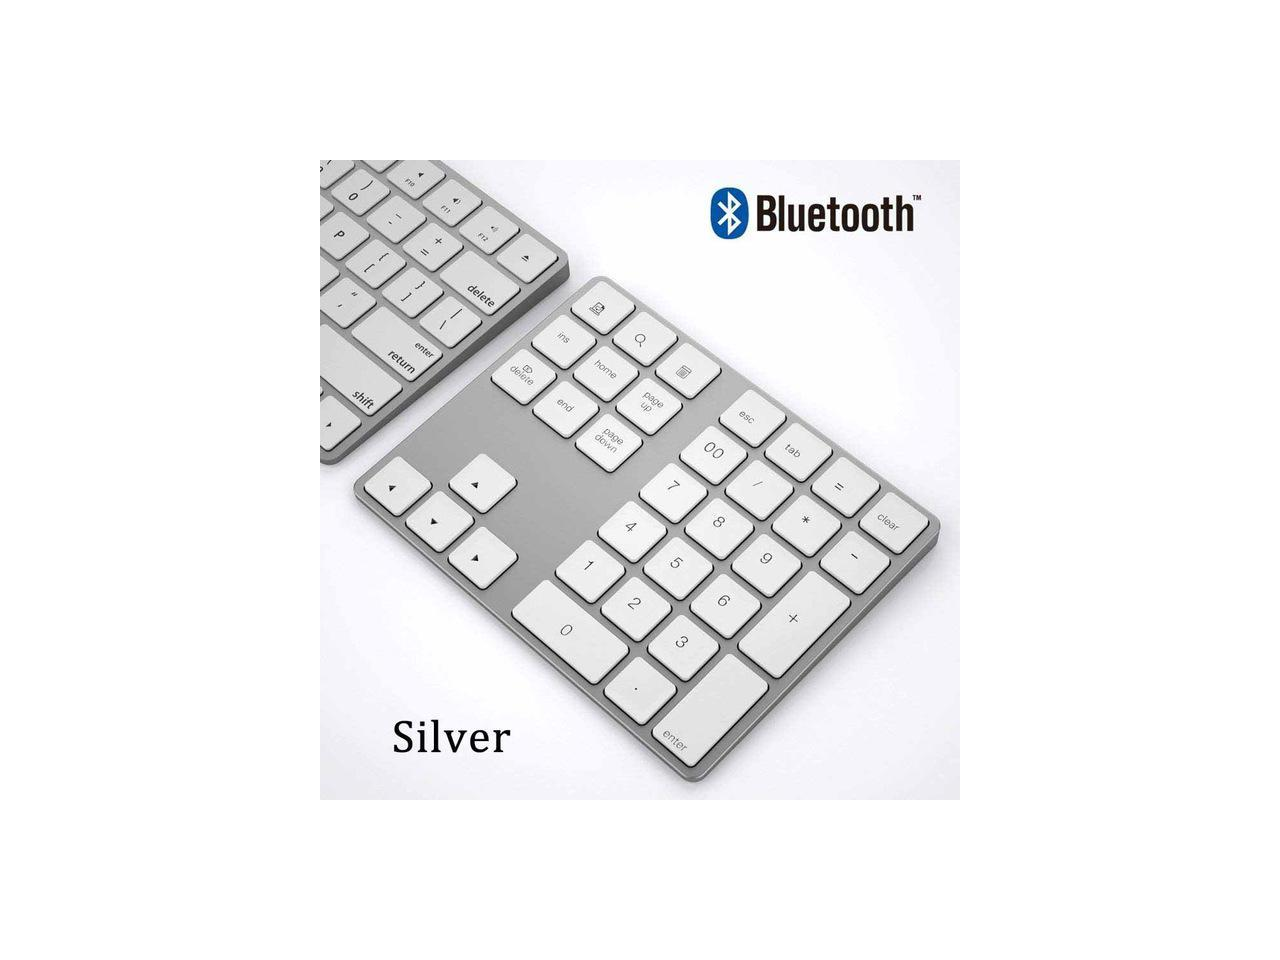 Numeric Keyboard,BT 3.0 Chip 34 Keys Mini Rechargeable Numpad Wireless Numeric Small Keypad,Scissors Foot Key Cap Structure Design,Fast Rebound Speed and Low Latency